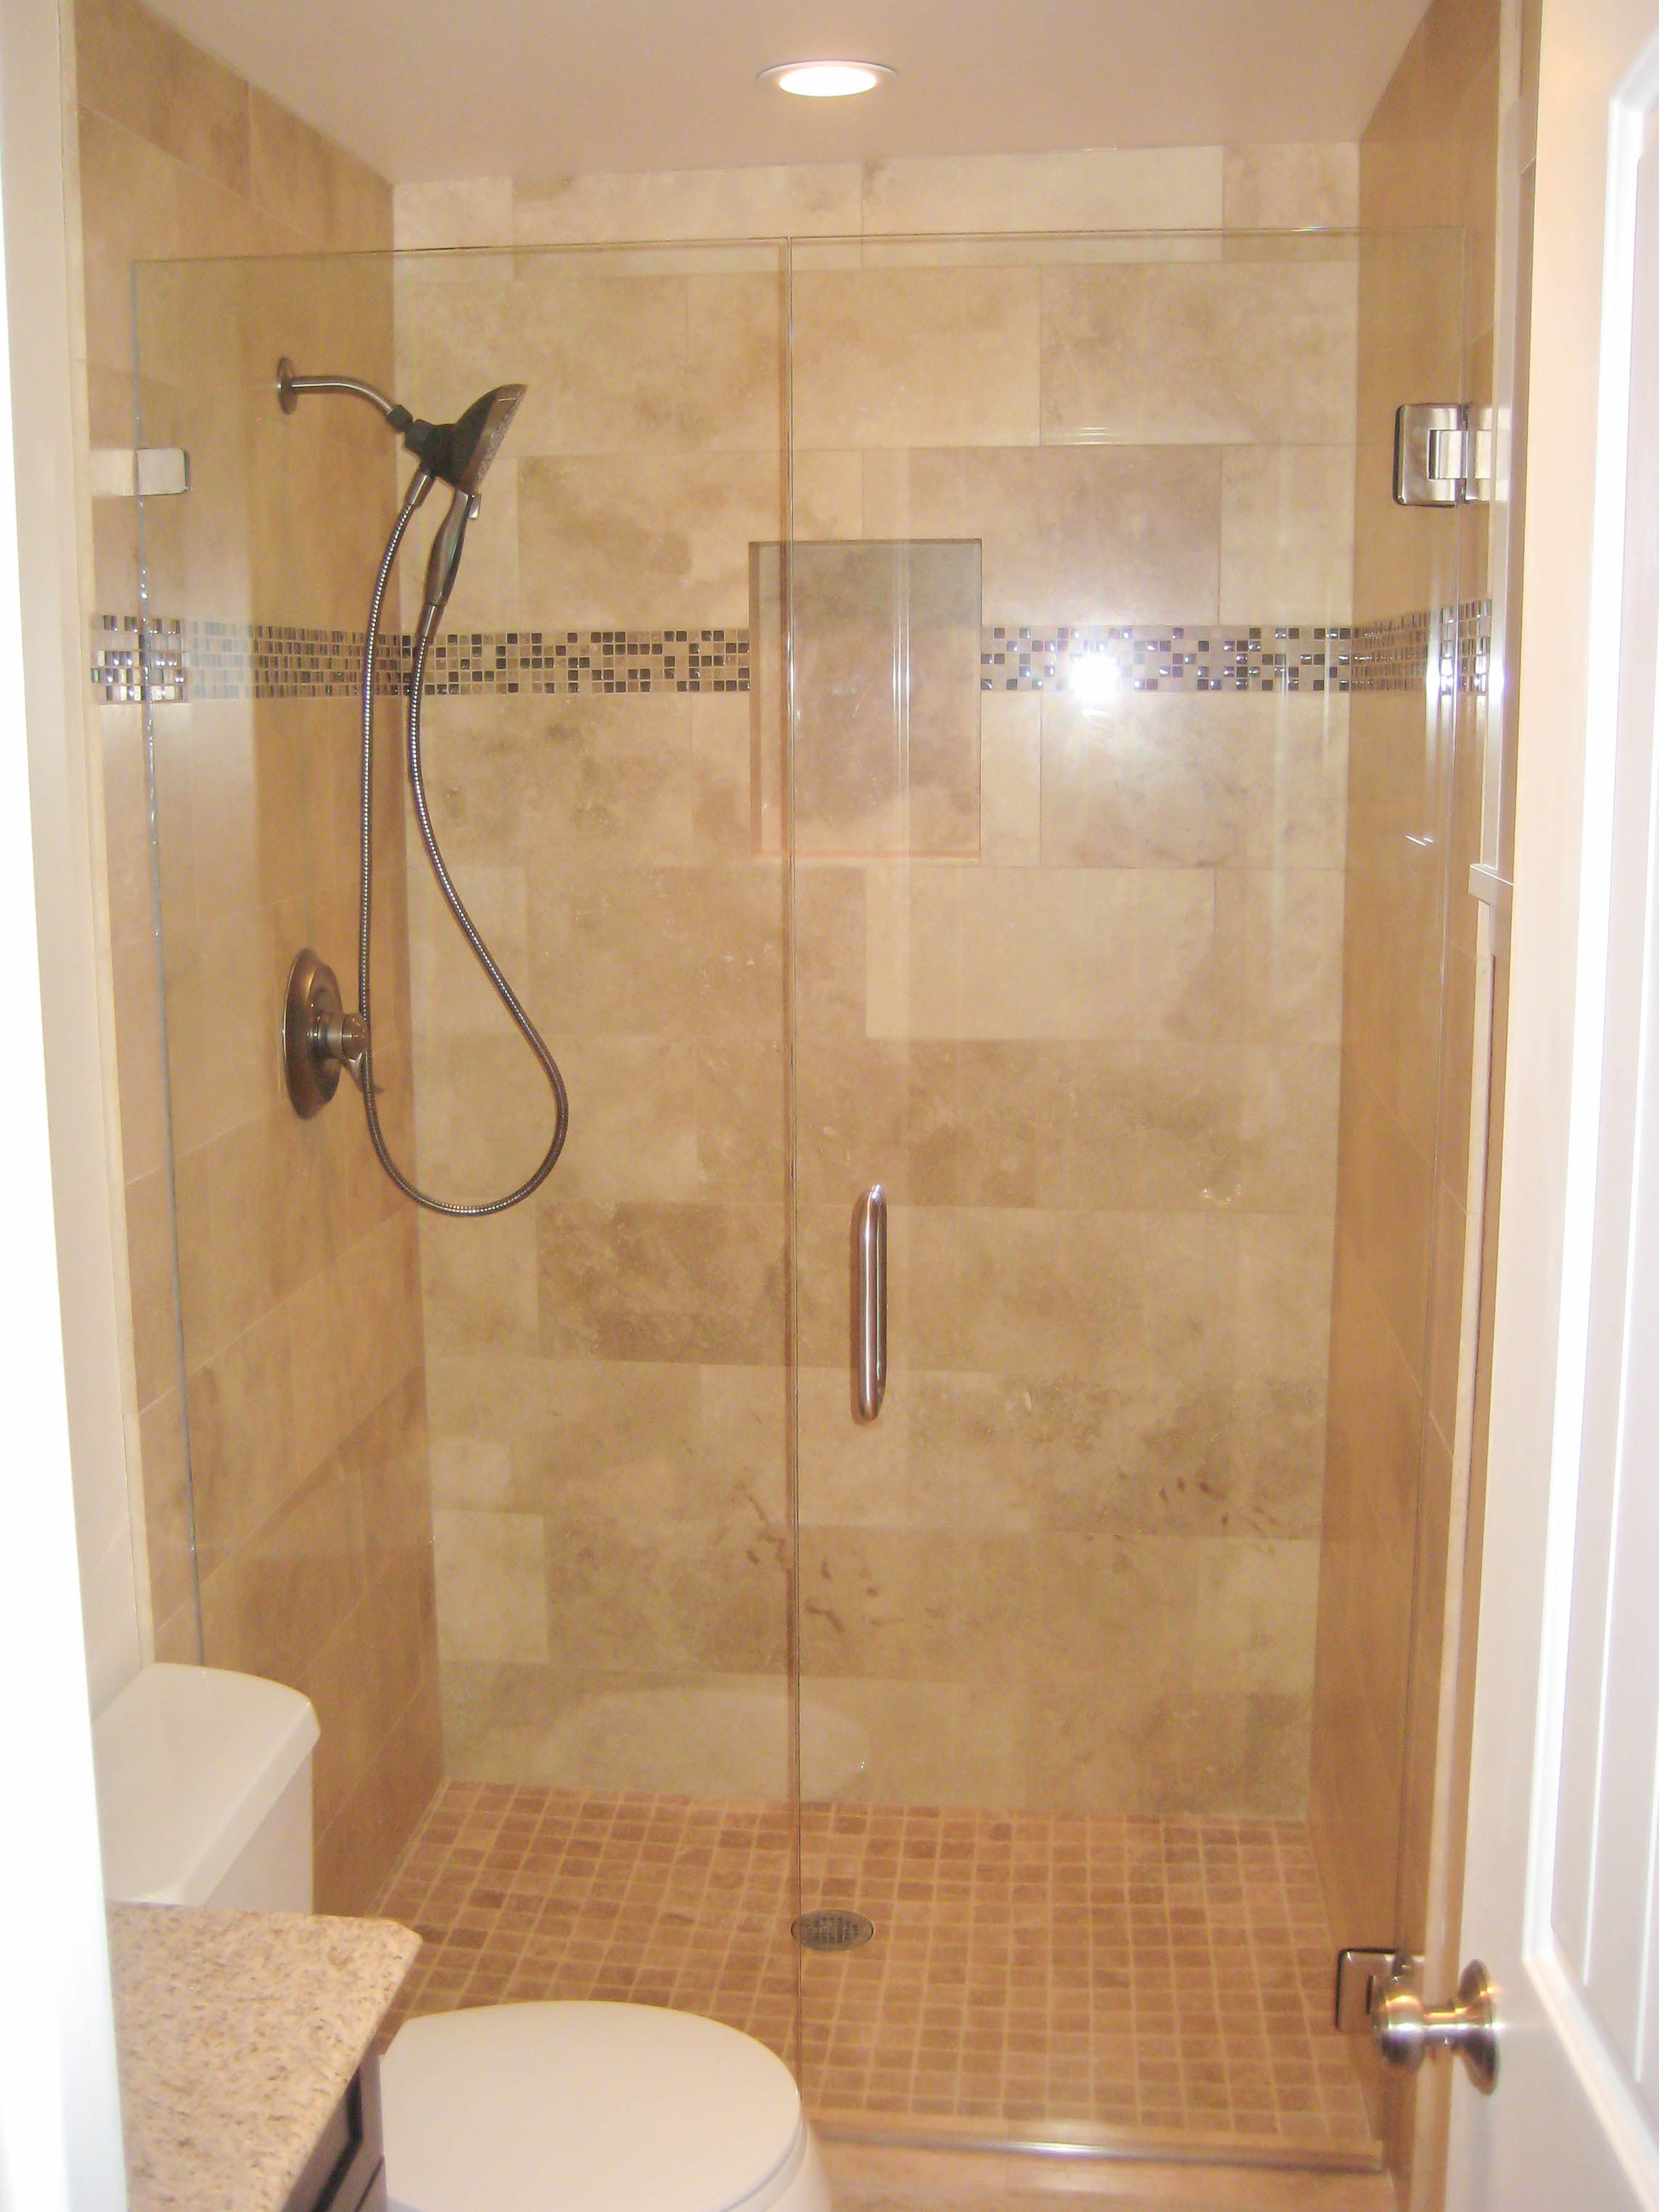 Bathroom Showers Photos - Seattle Tile Contractor | IRC Tile Services